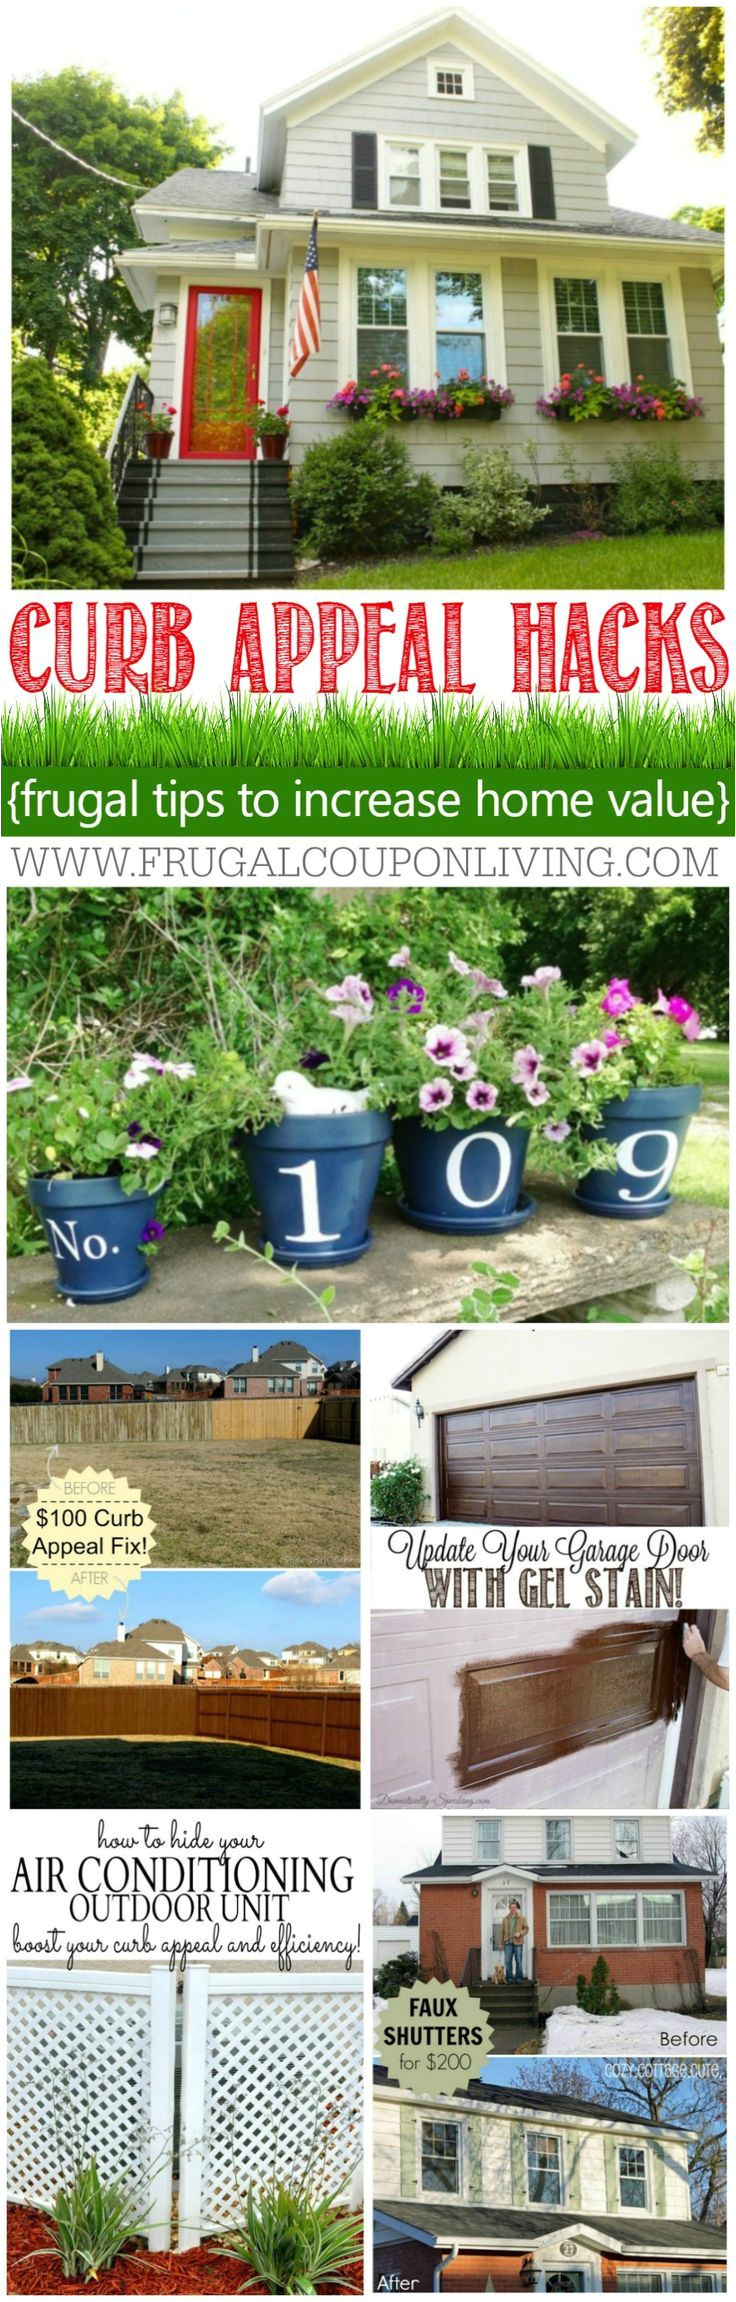 curb appeal hacks and tips frugal home ideas to increase your home value update